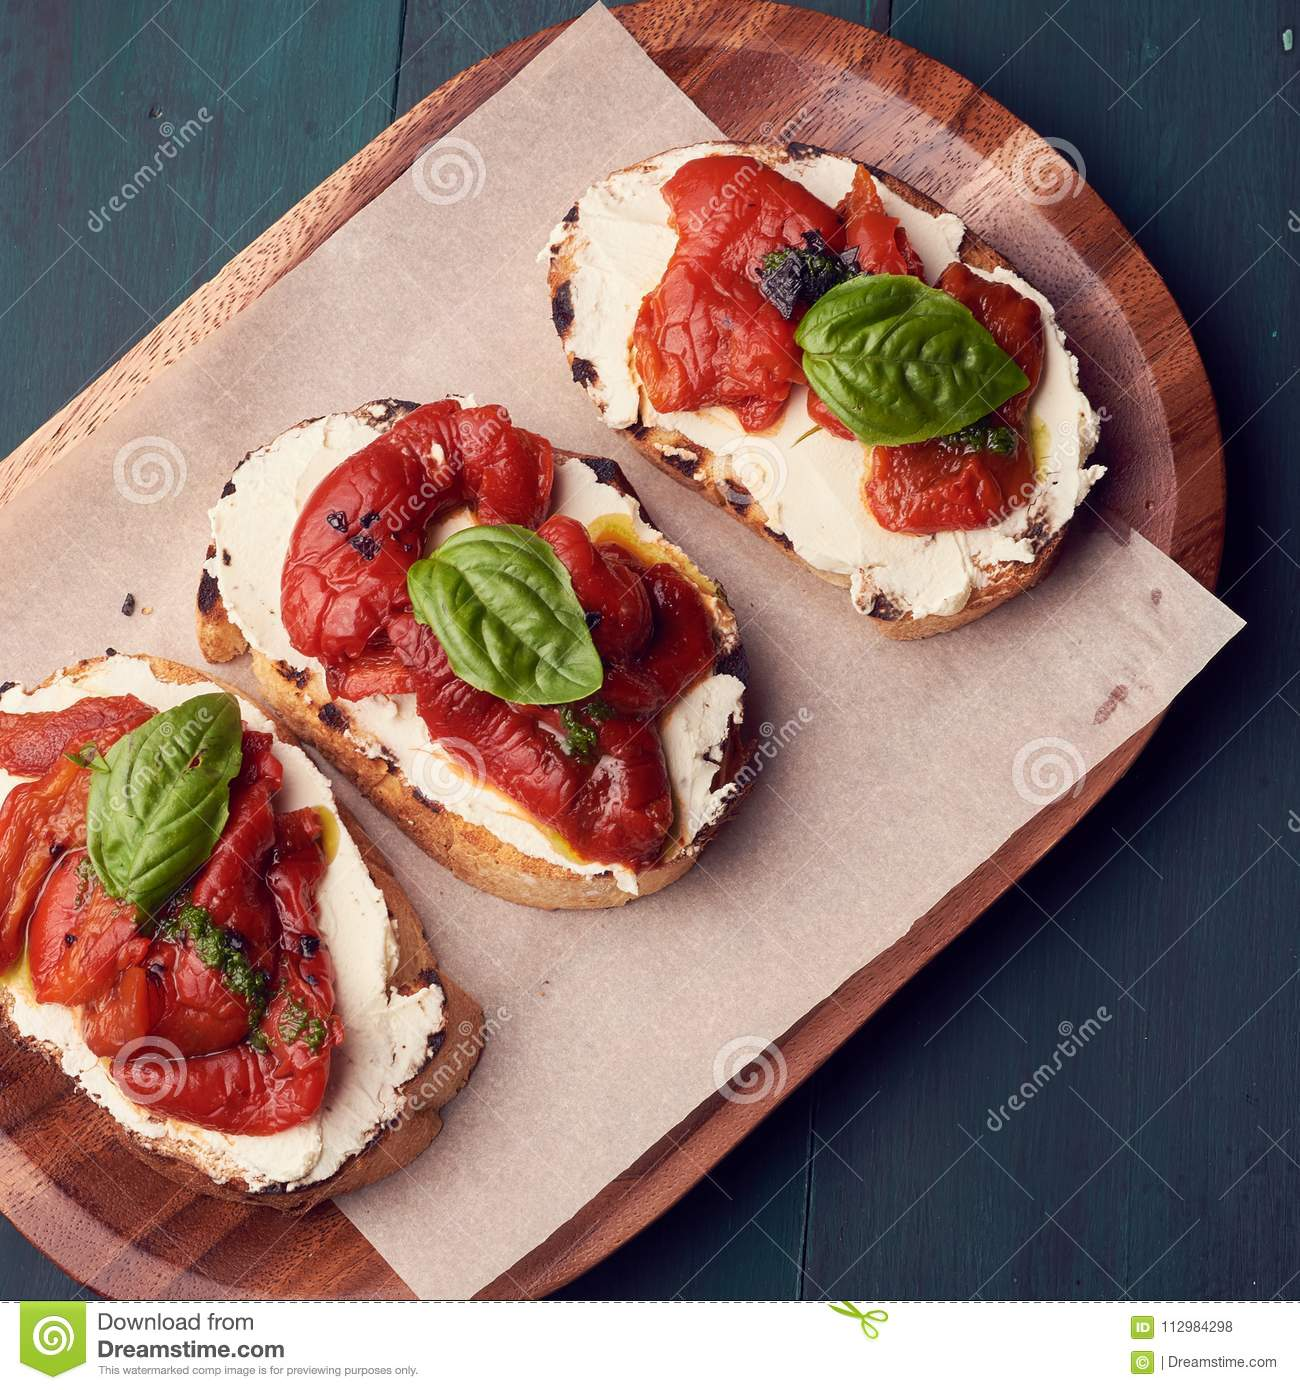 Snack set. Brushetta with cherry tomatoes, garlic, cream cheese and basil. Slow food, party food concept